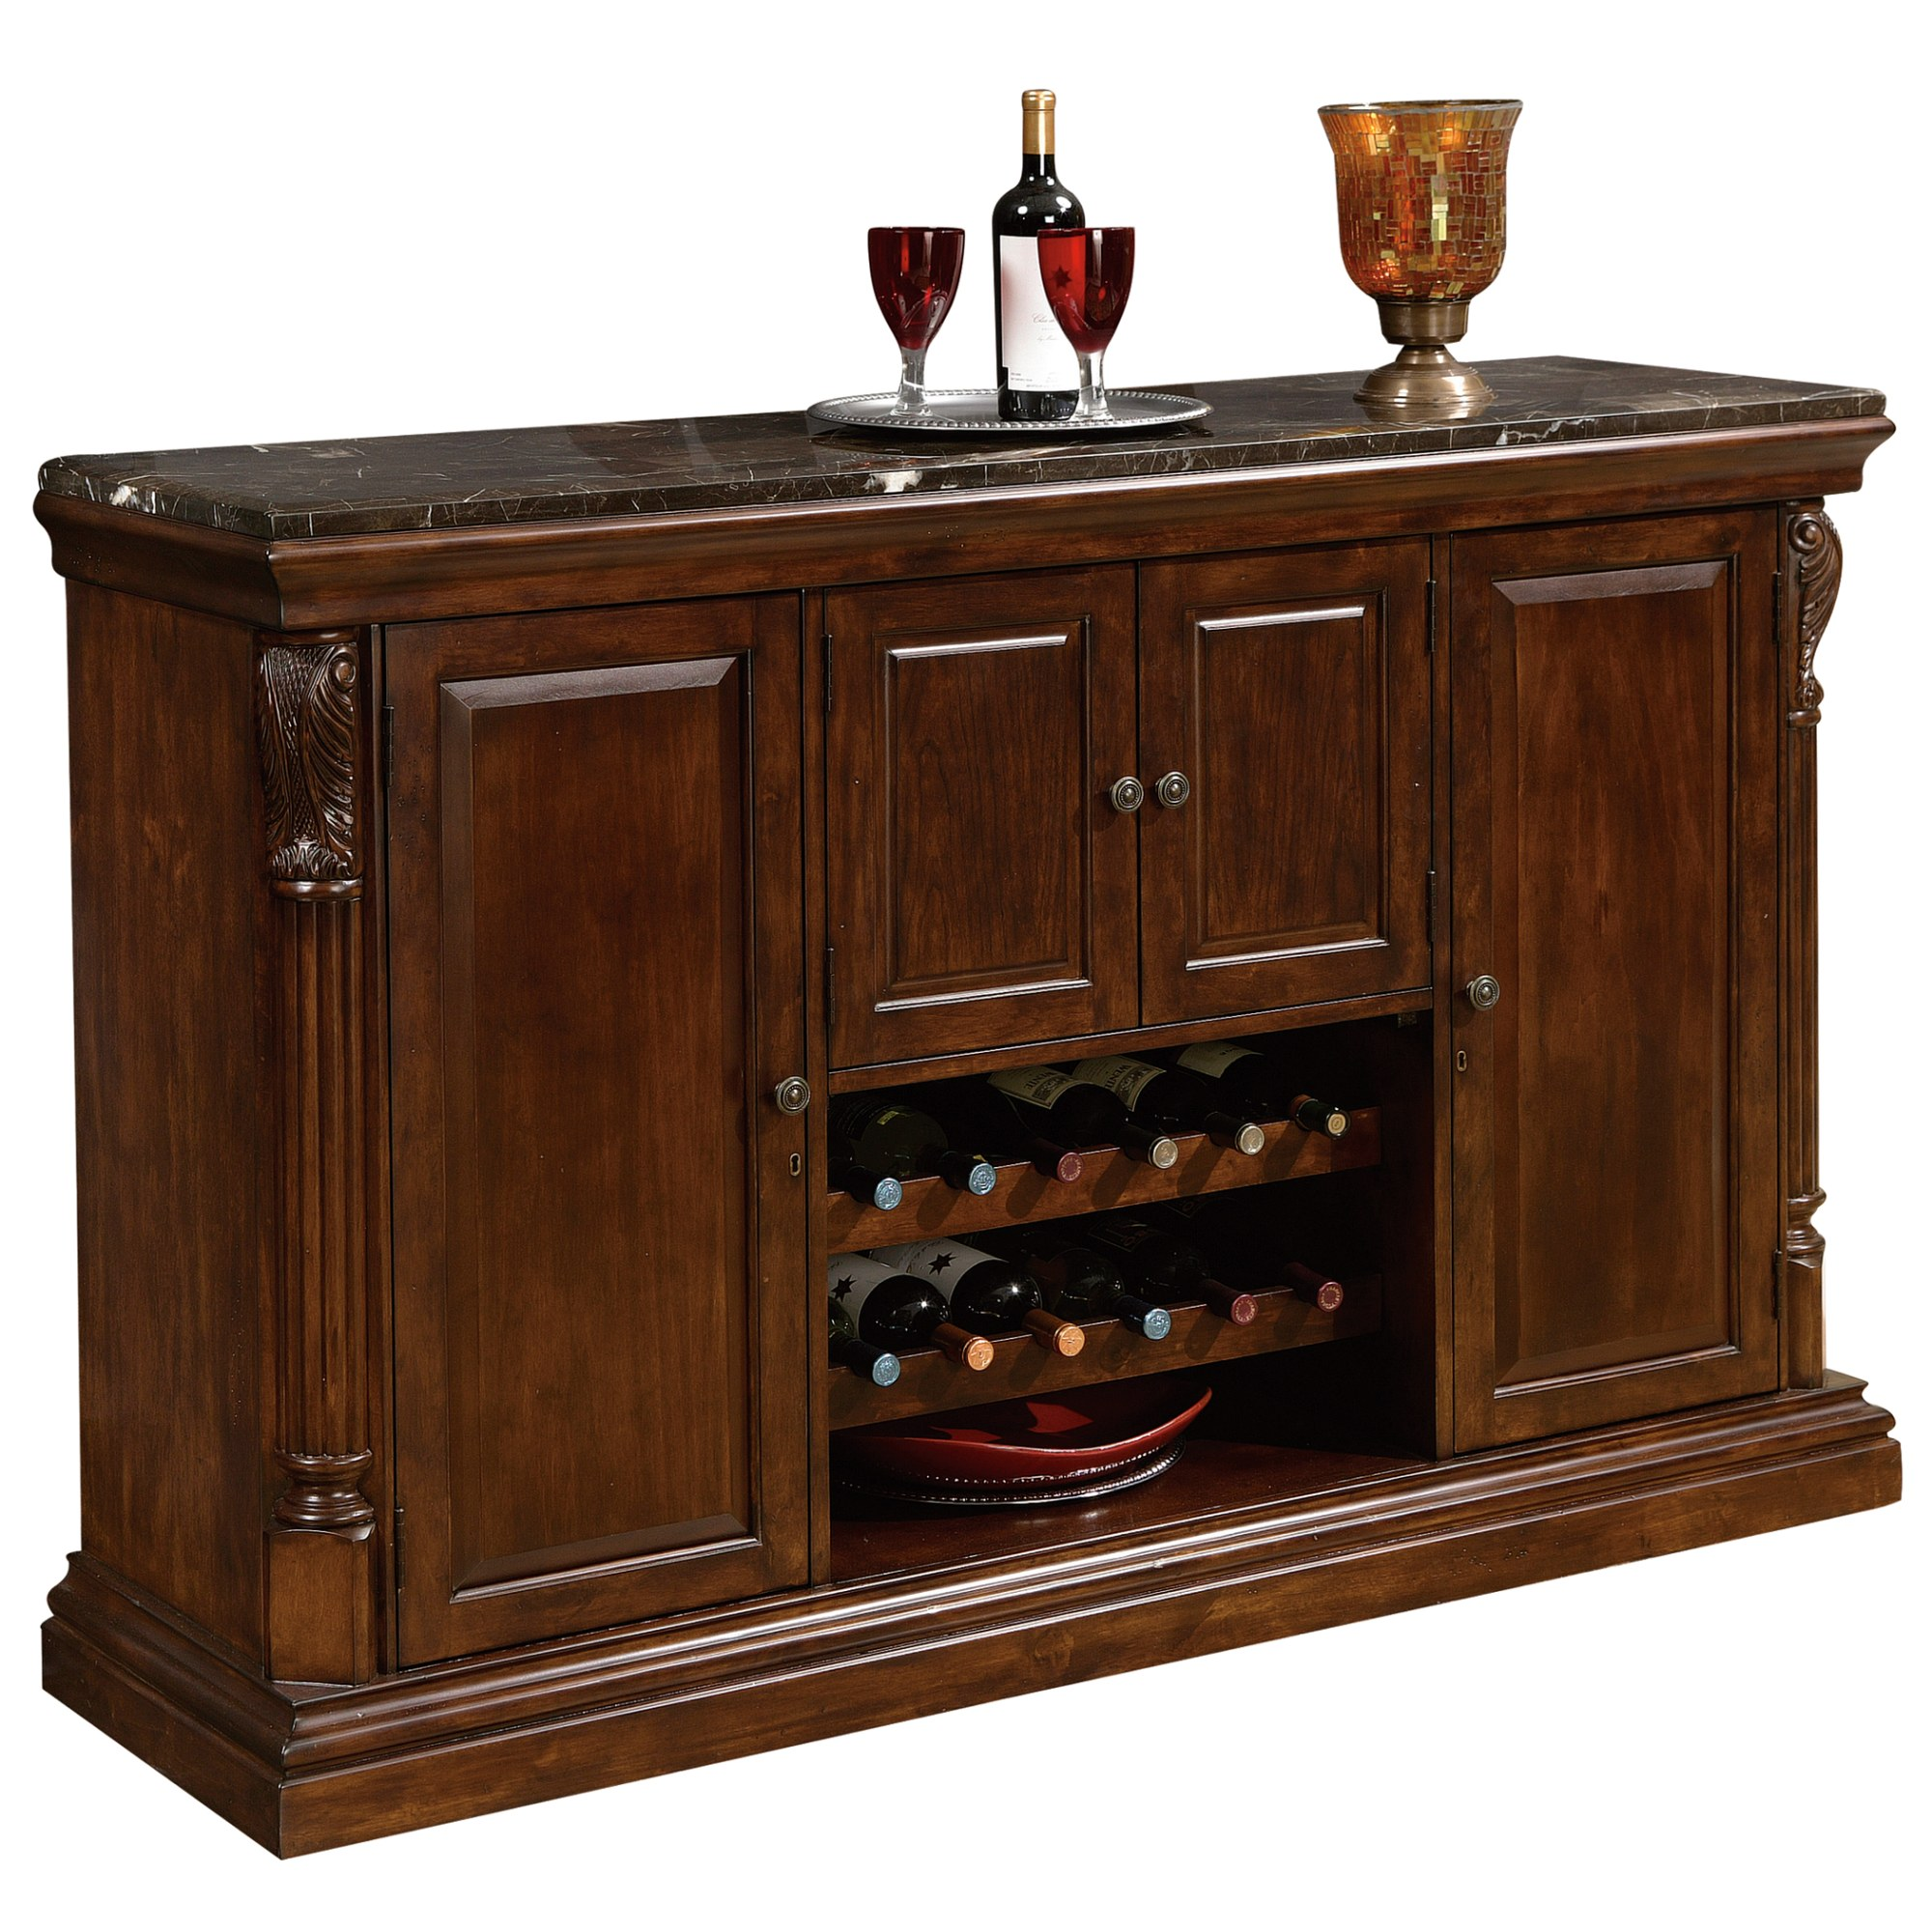 Image for 693-006 Niagara Bar Console from Howard Miller Official Website